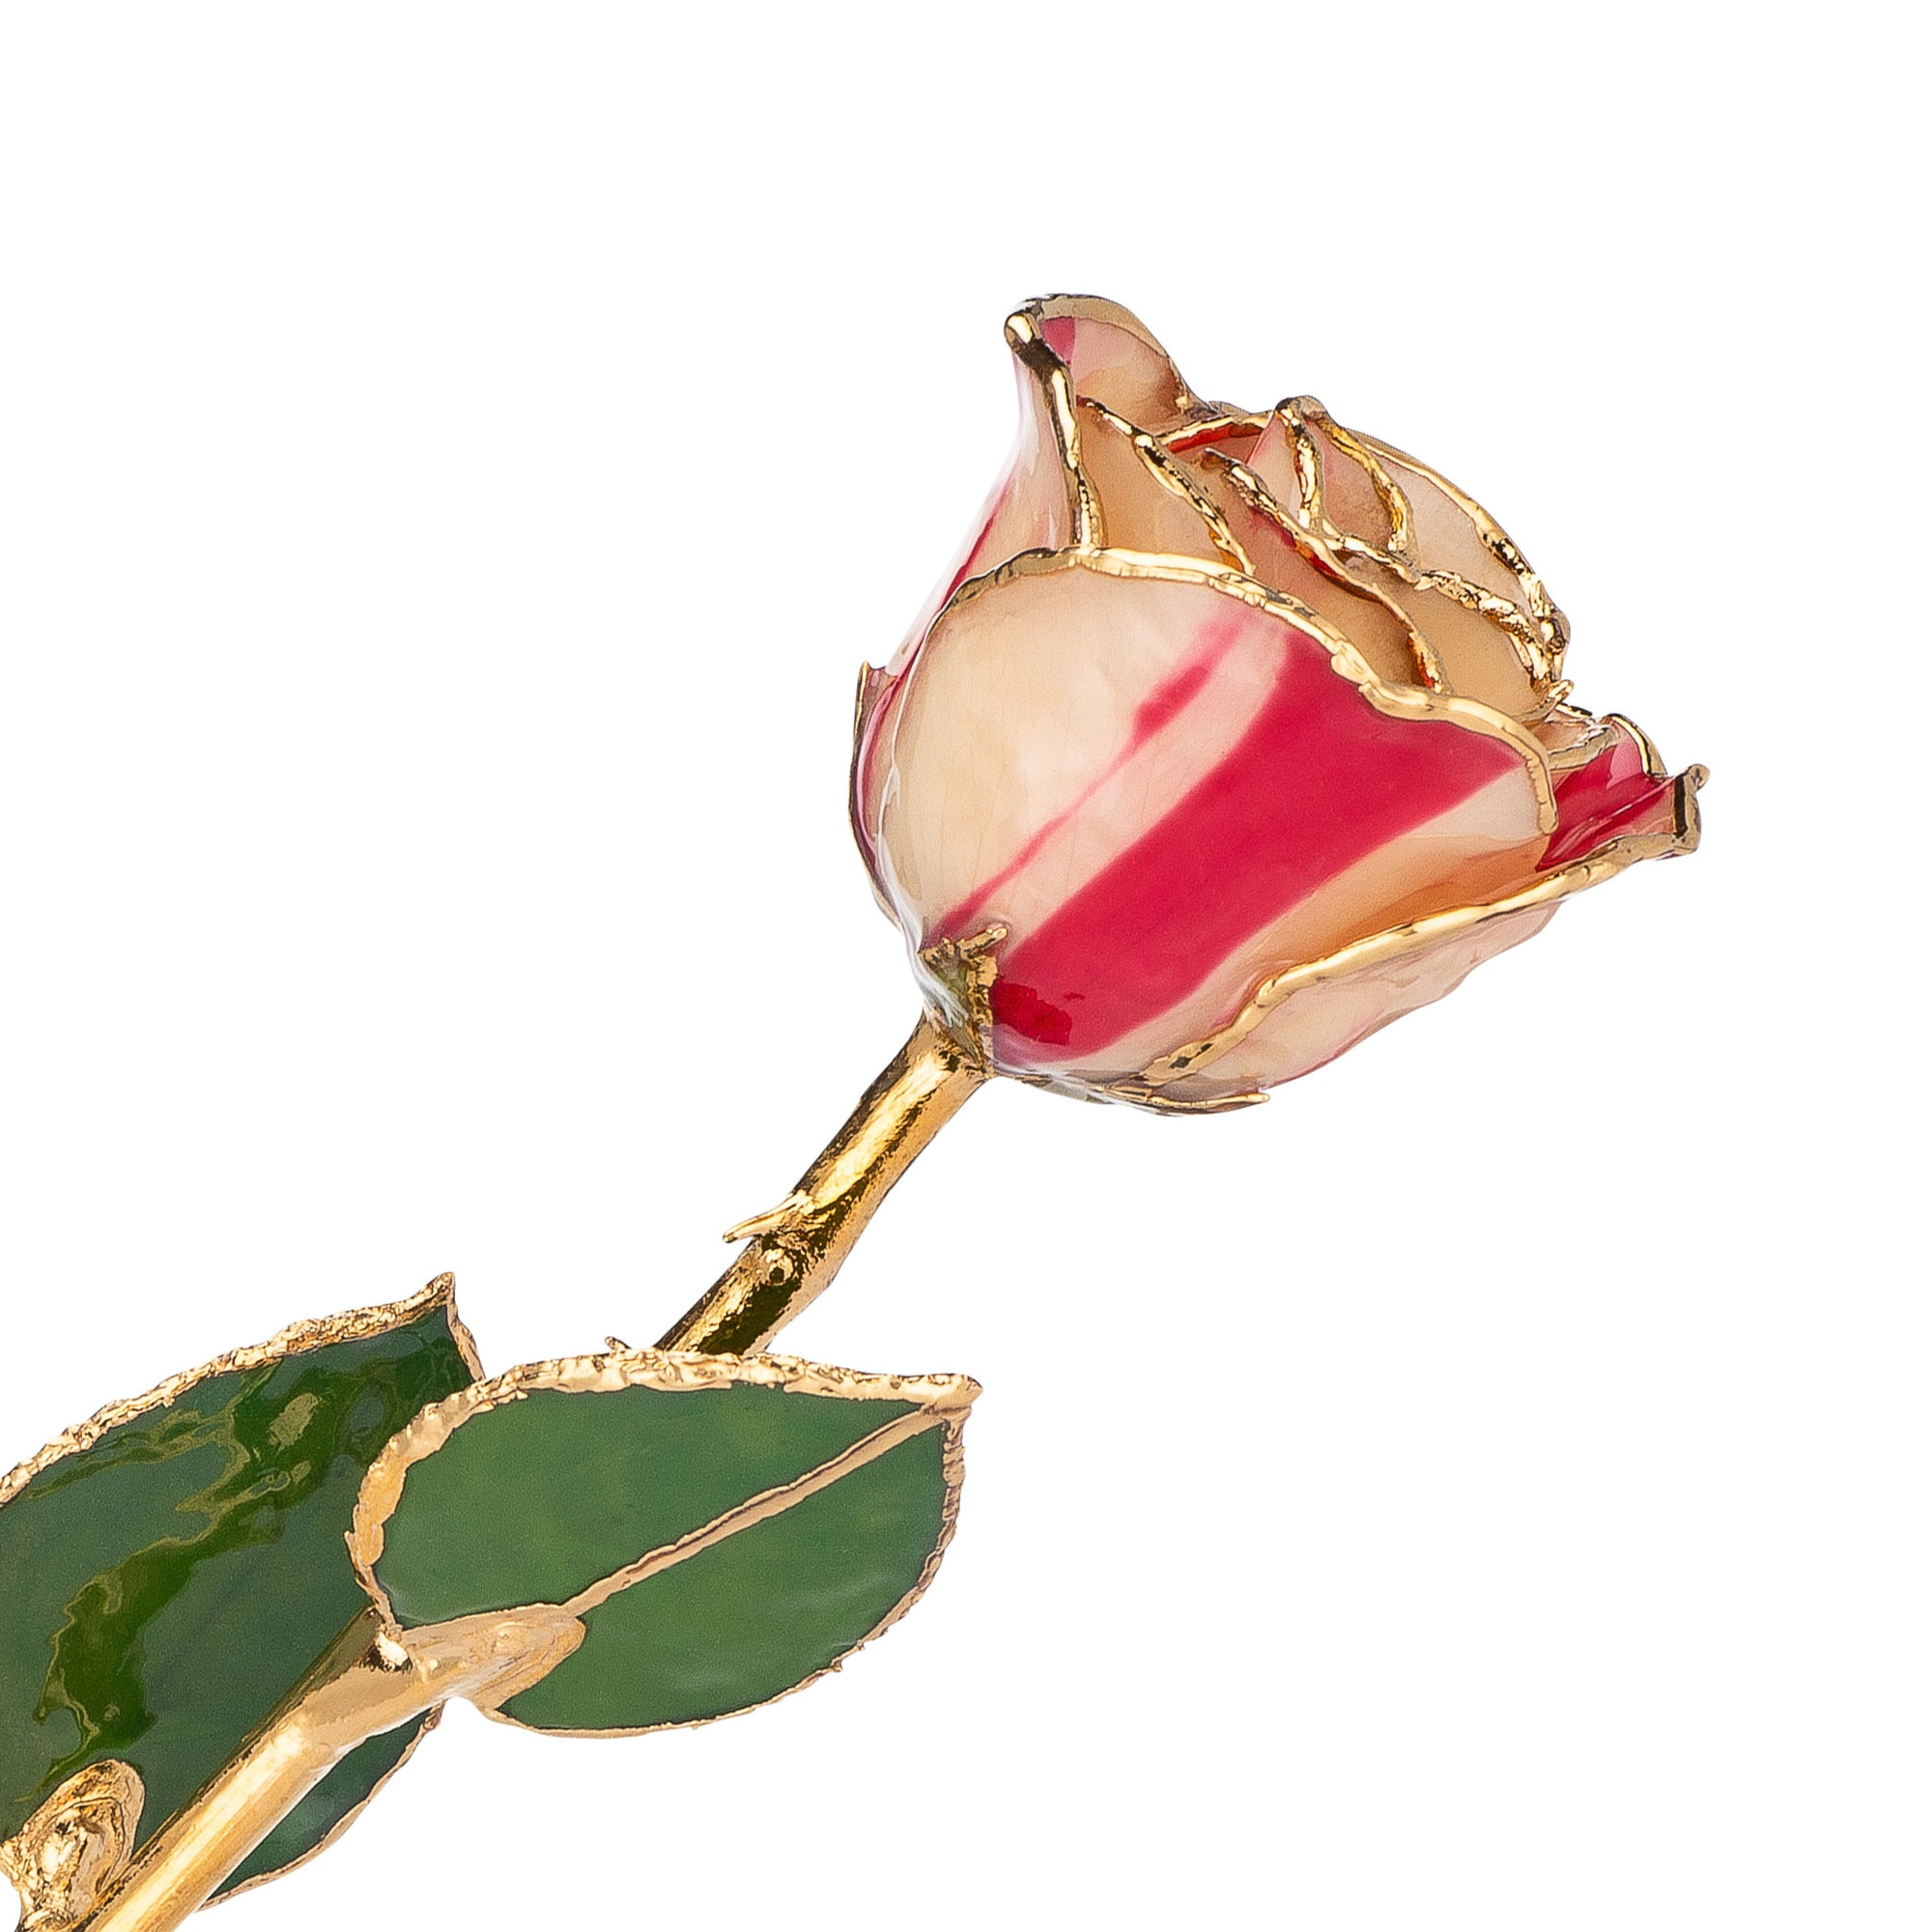 24K Gold Trimmed Forever Rose with Peppermint Striped Petals. View of Stem, Leaves, and Rose Petals and Showing Detail of Gold Trim